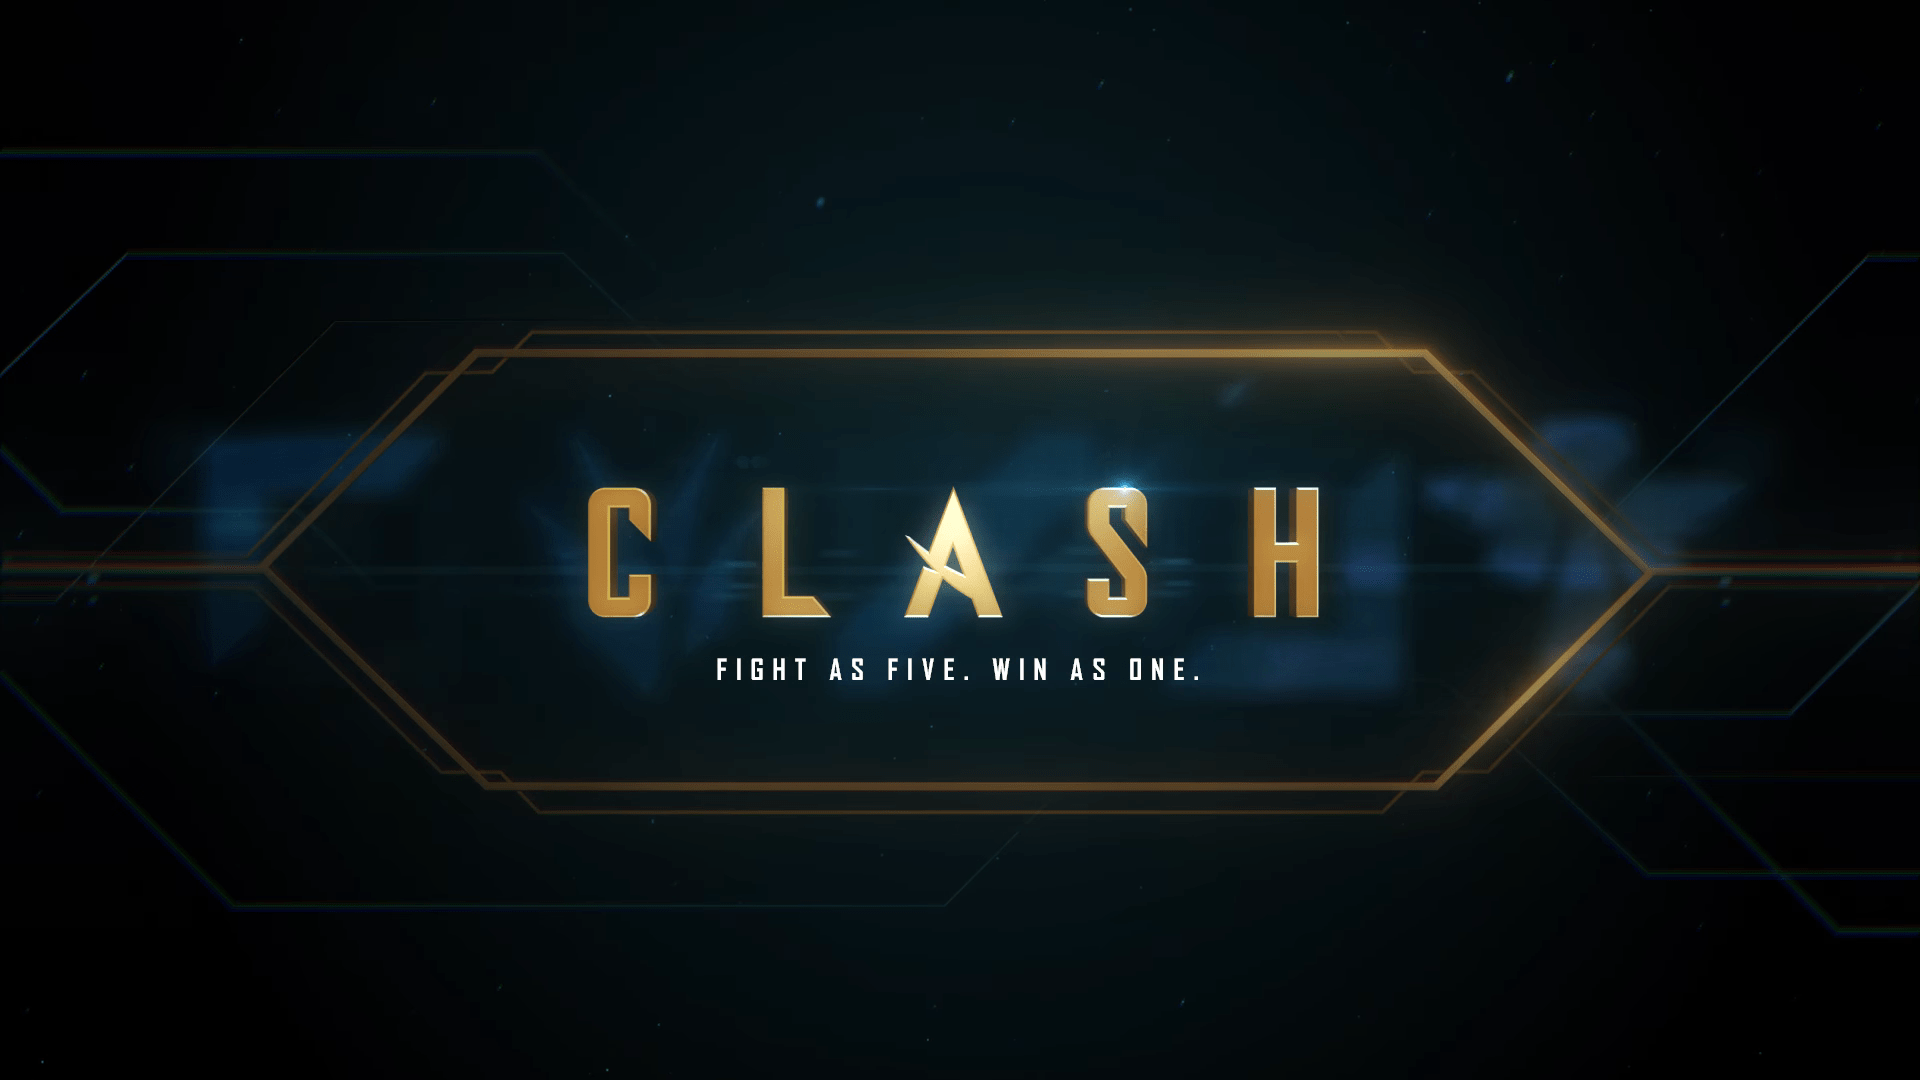 League Of Legends Brings Back Clash To PBE Servers, Plus Testing New Death Recap Feature